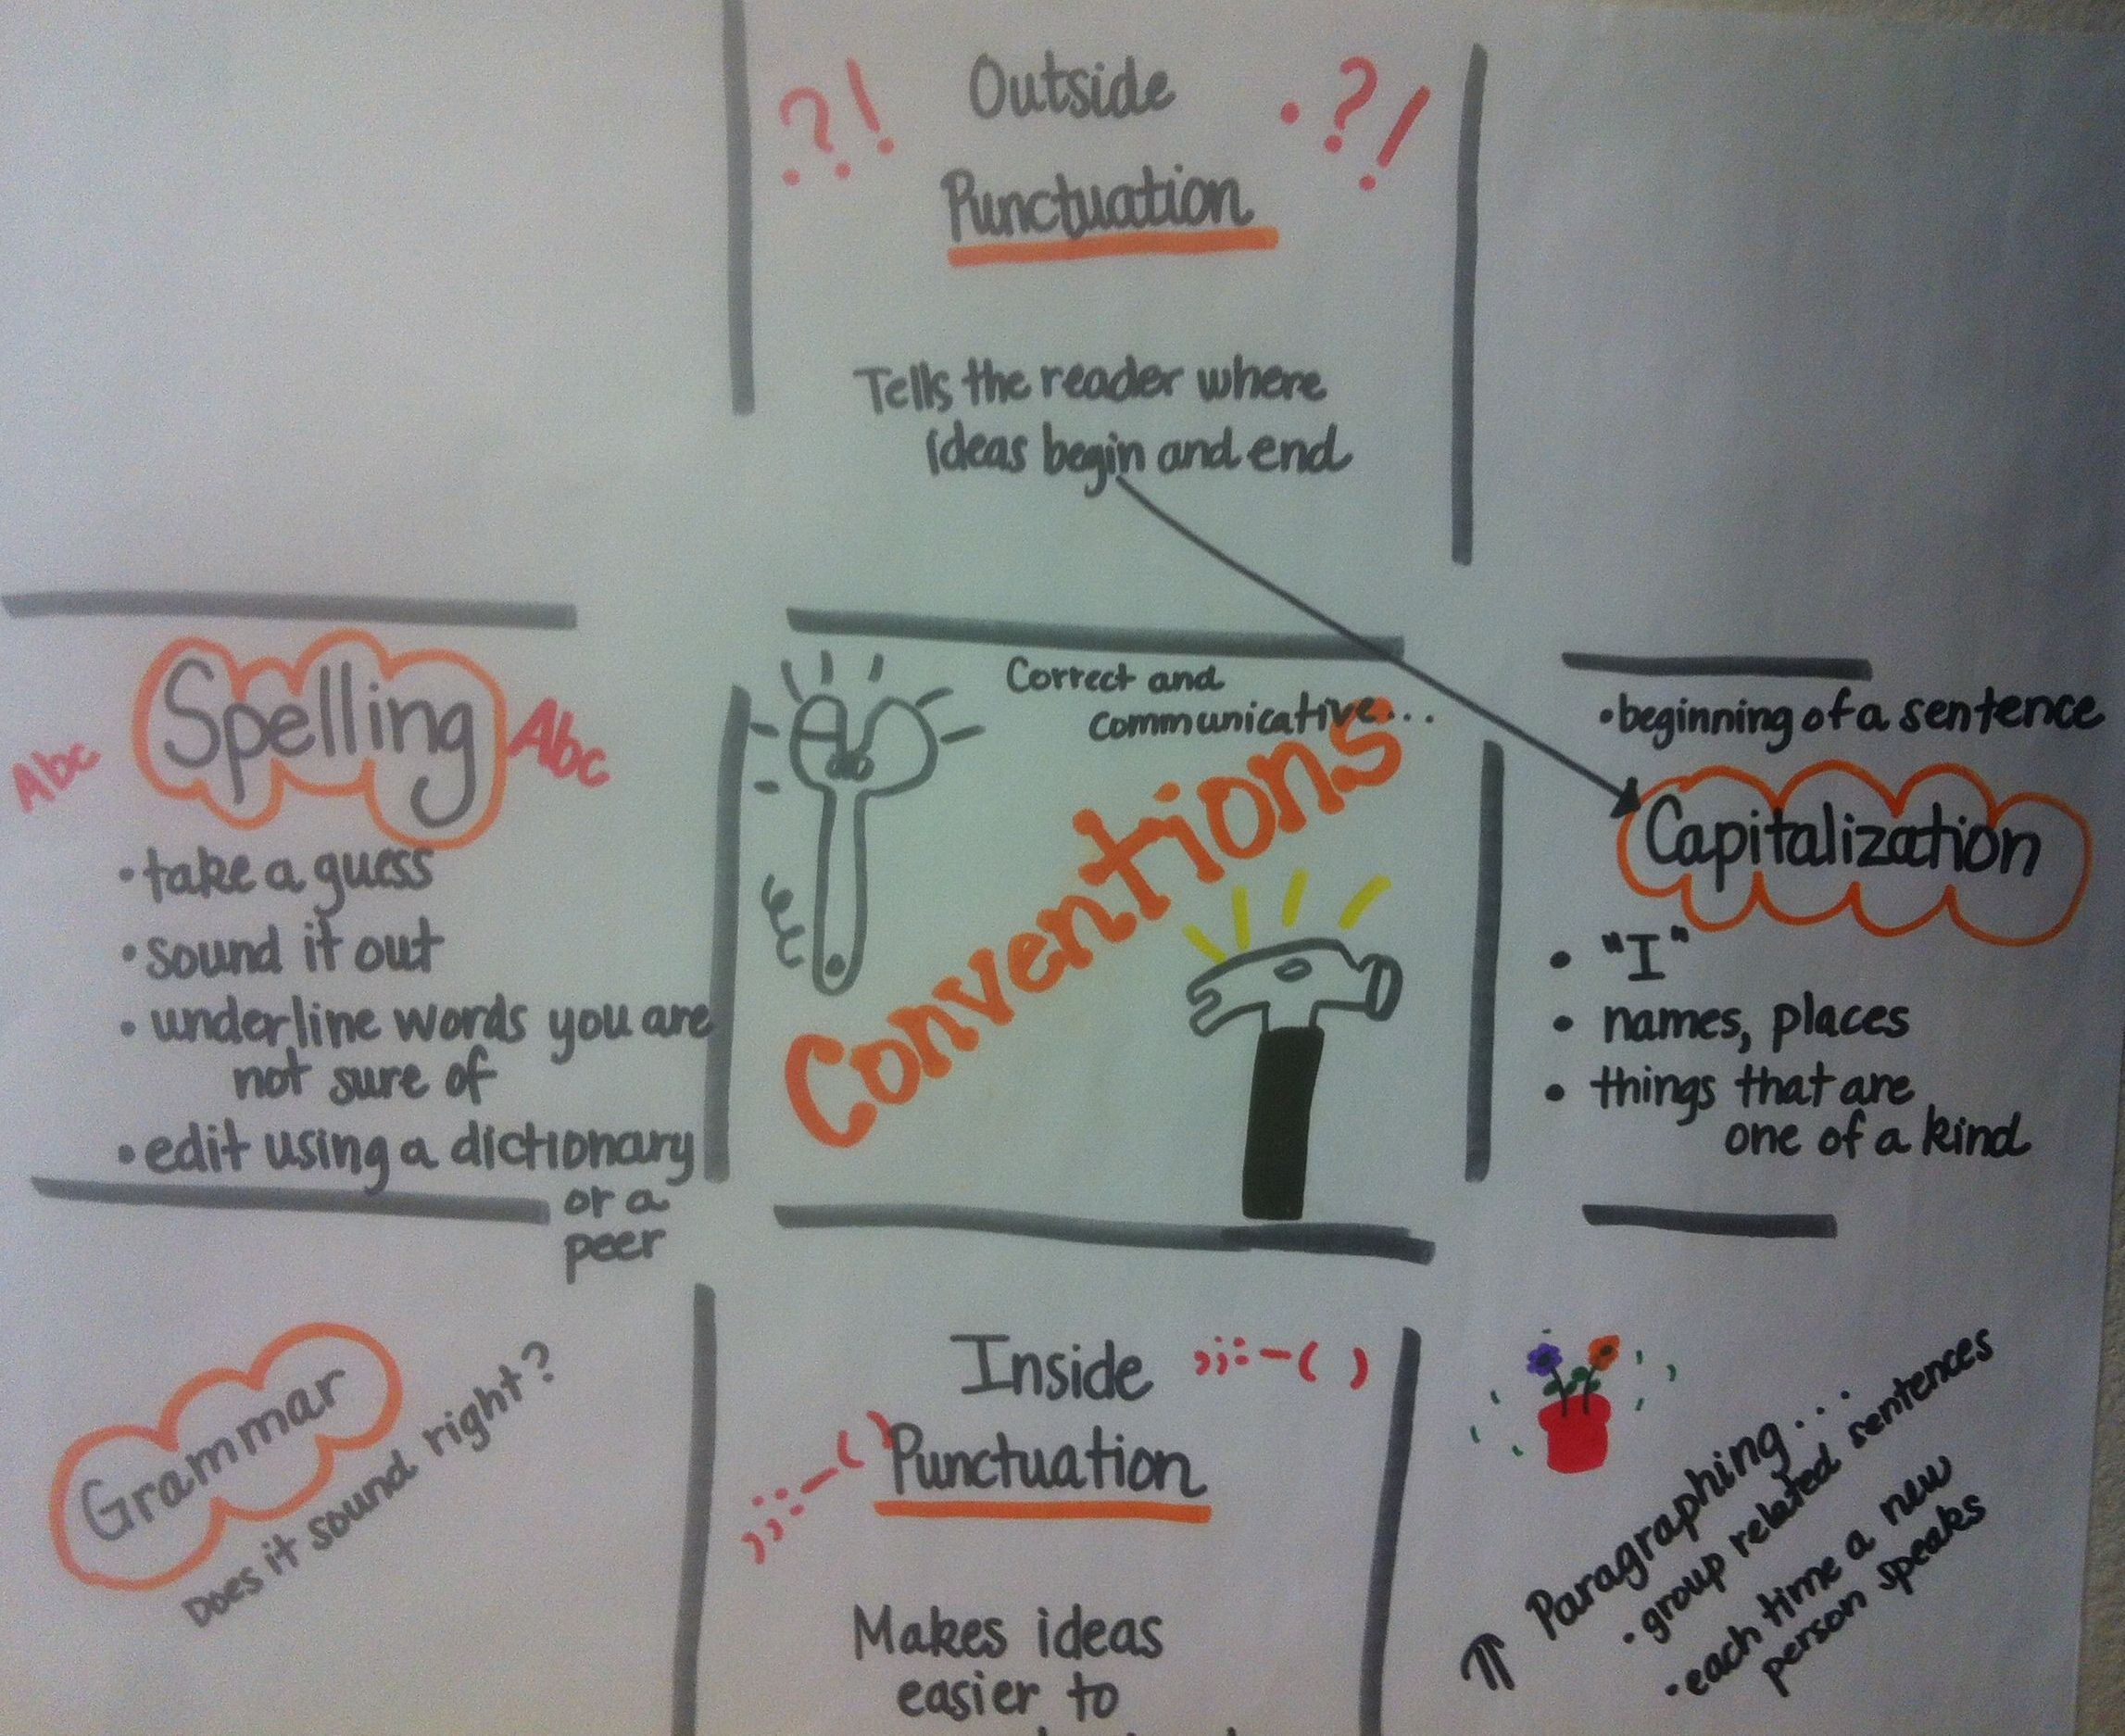 6 Traits Conventions Lori Barger